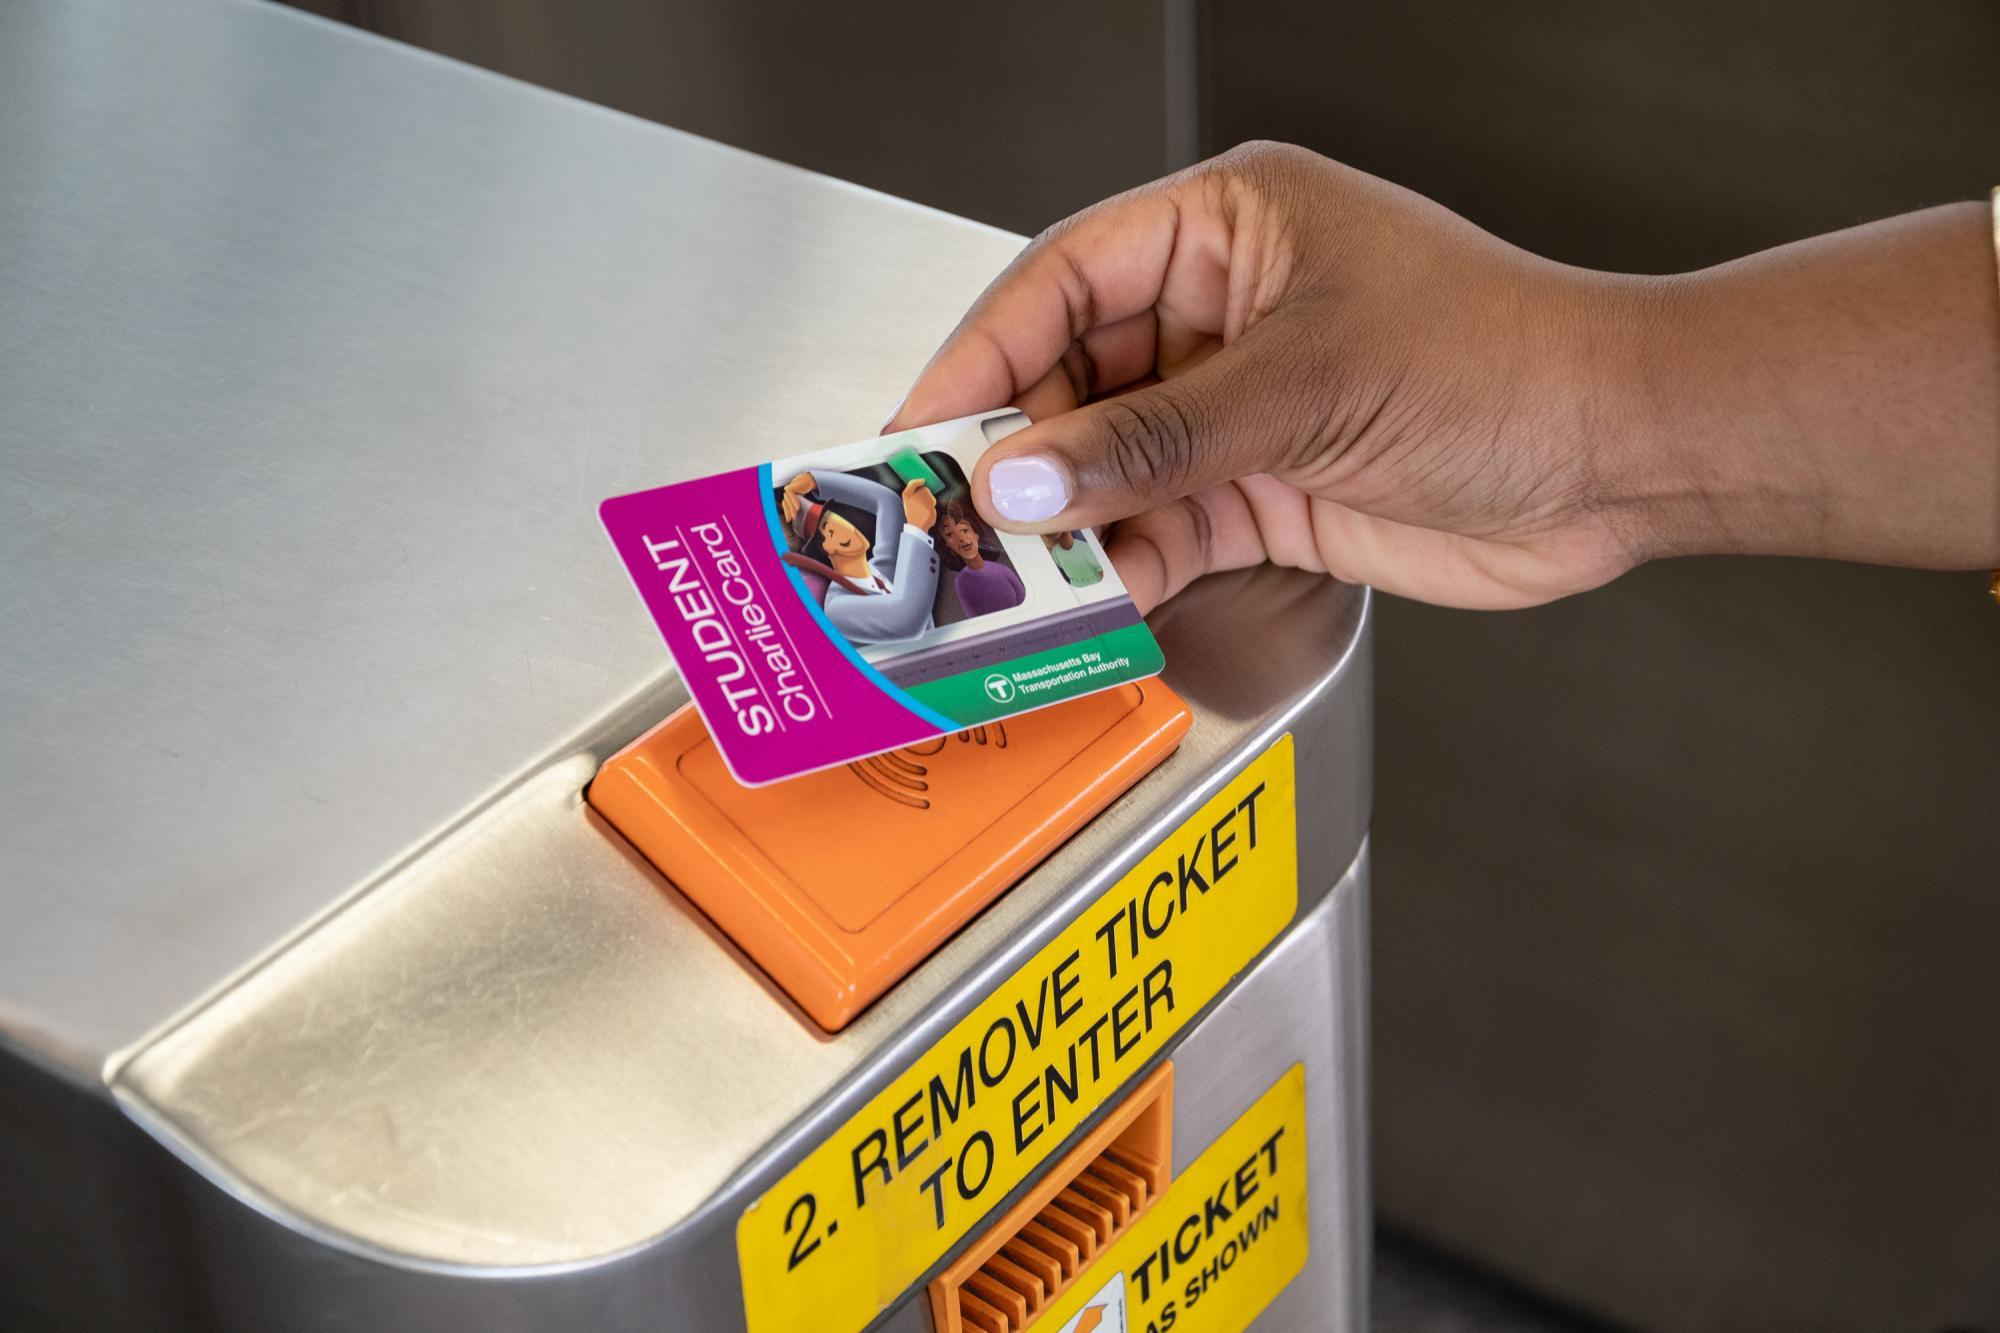 Tapping a purple M7 Student CharlieCard on a subway fare gate